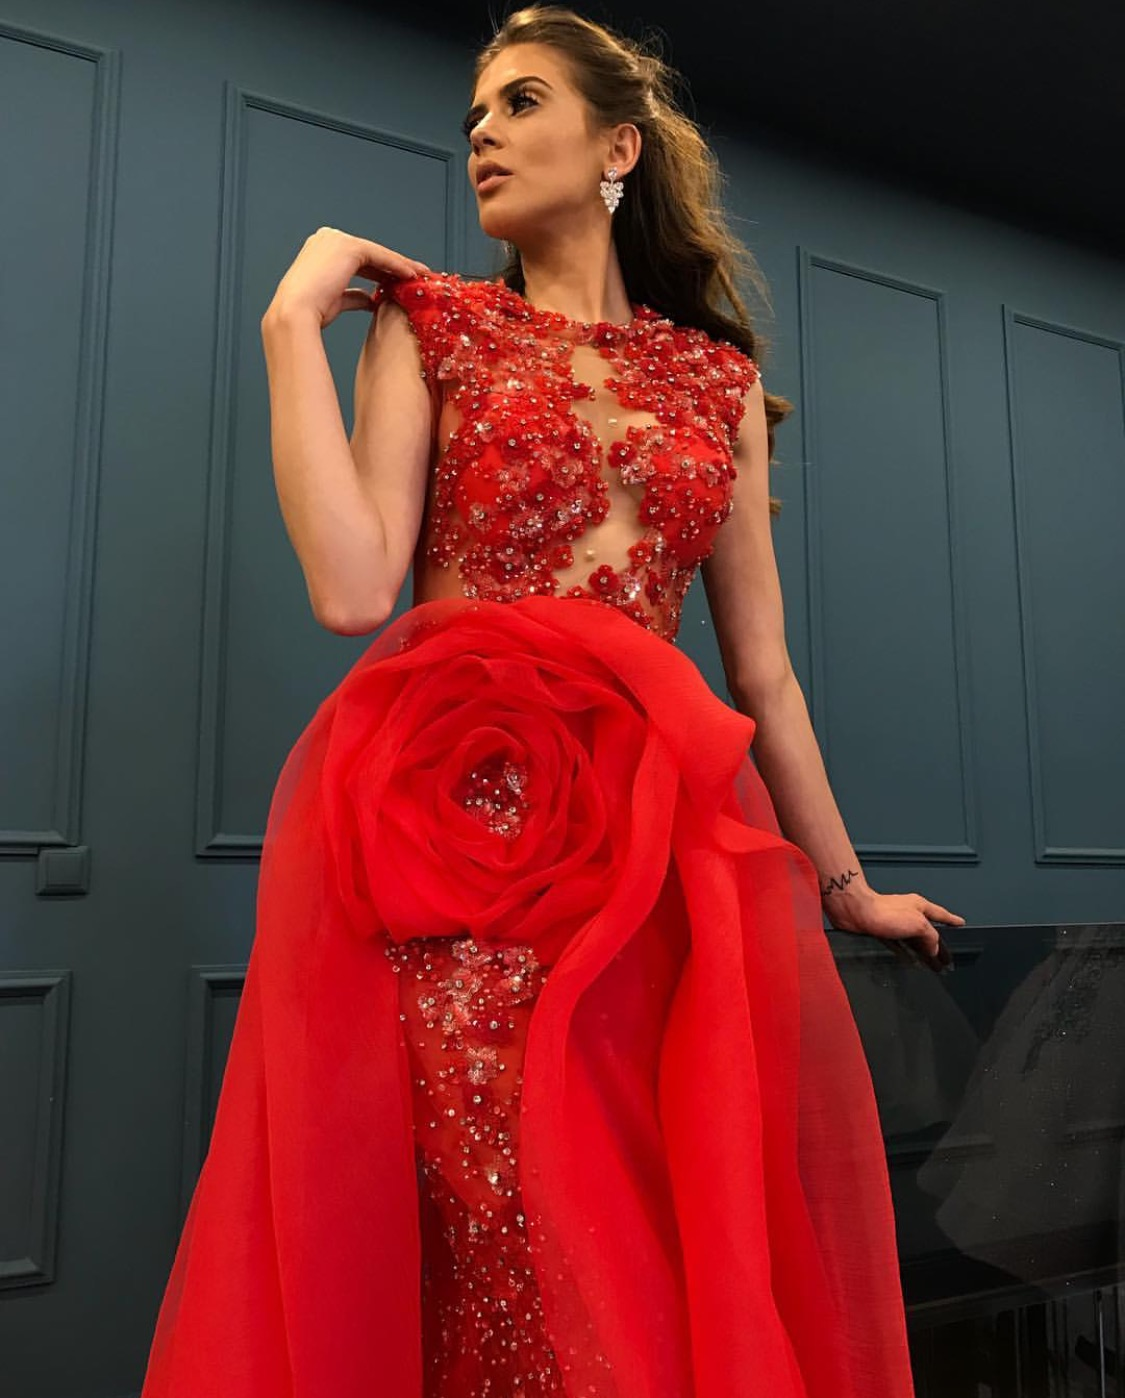 Ultra bling red evening rosette dress